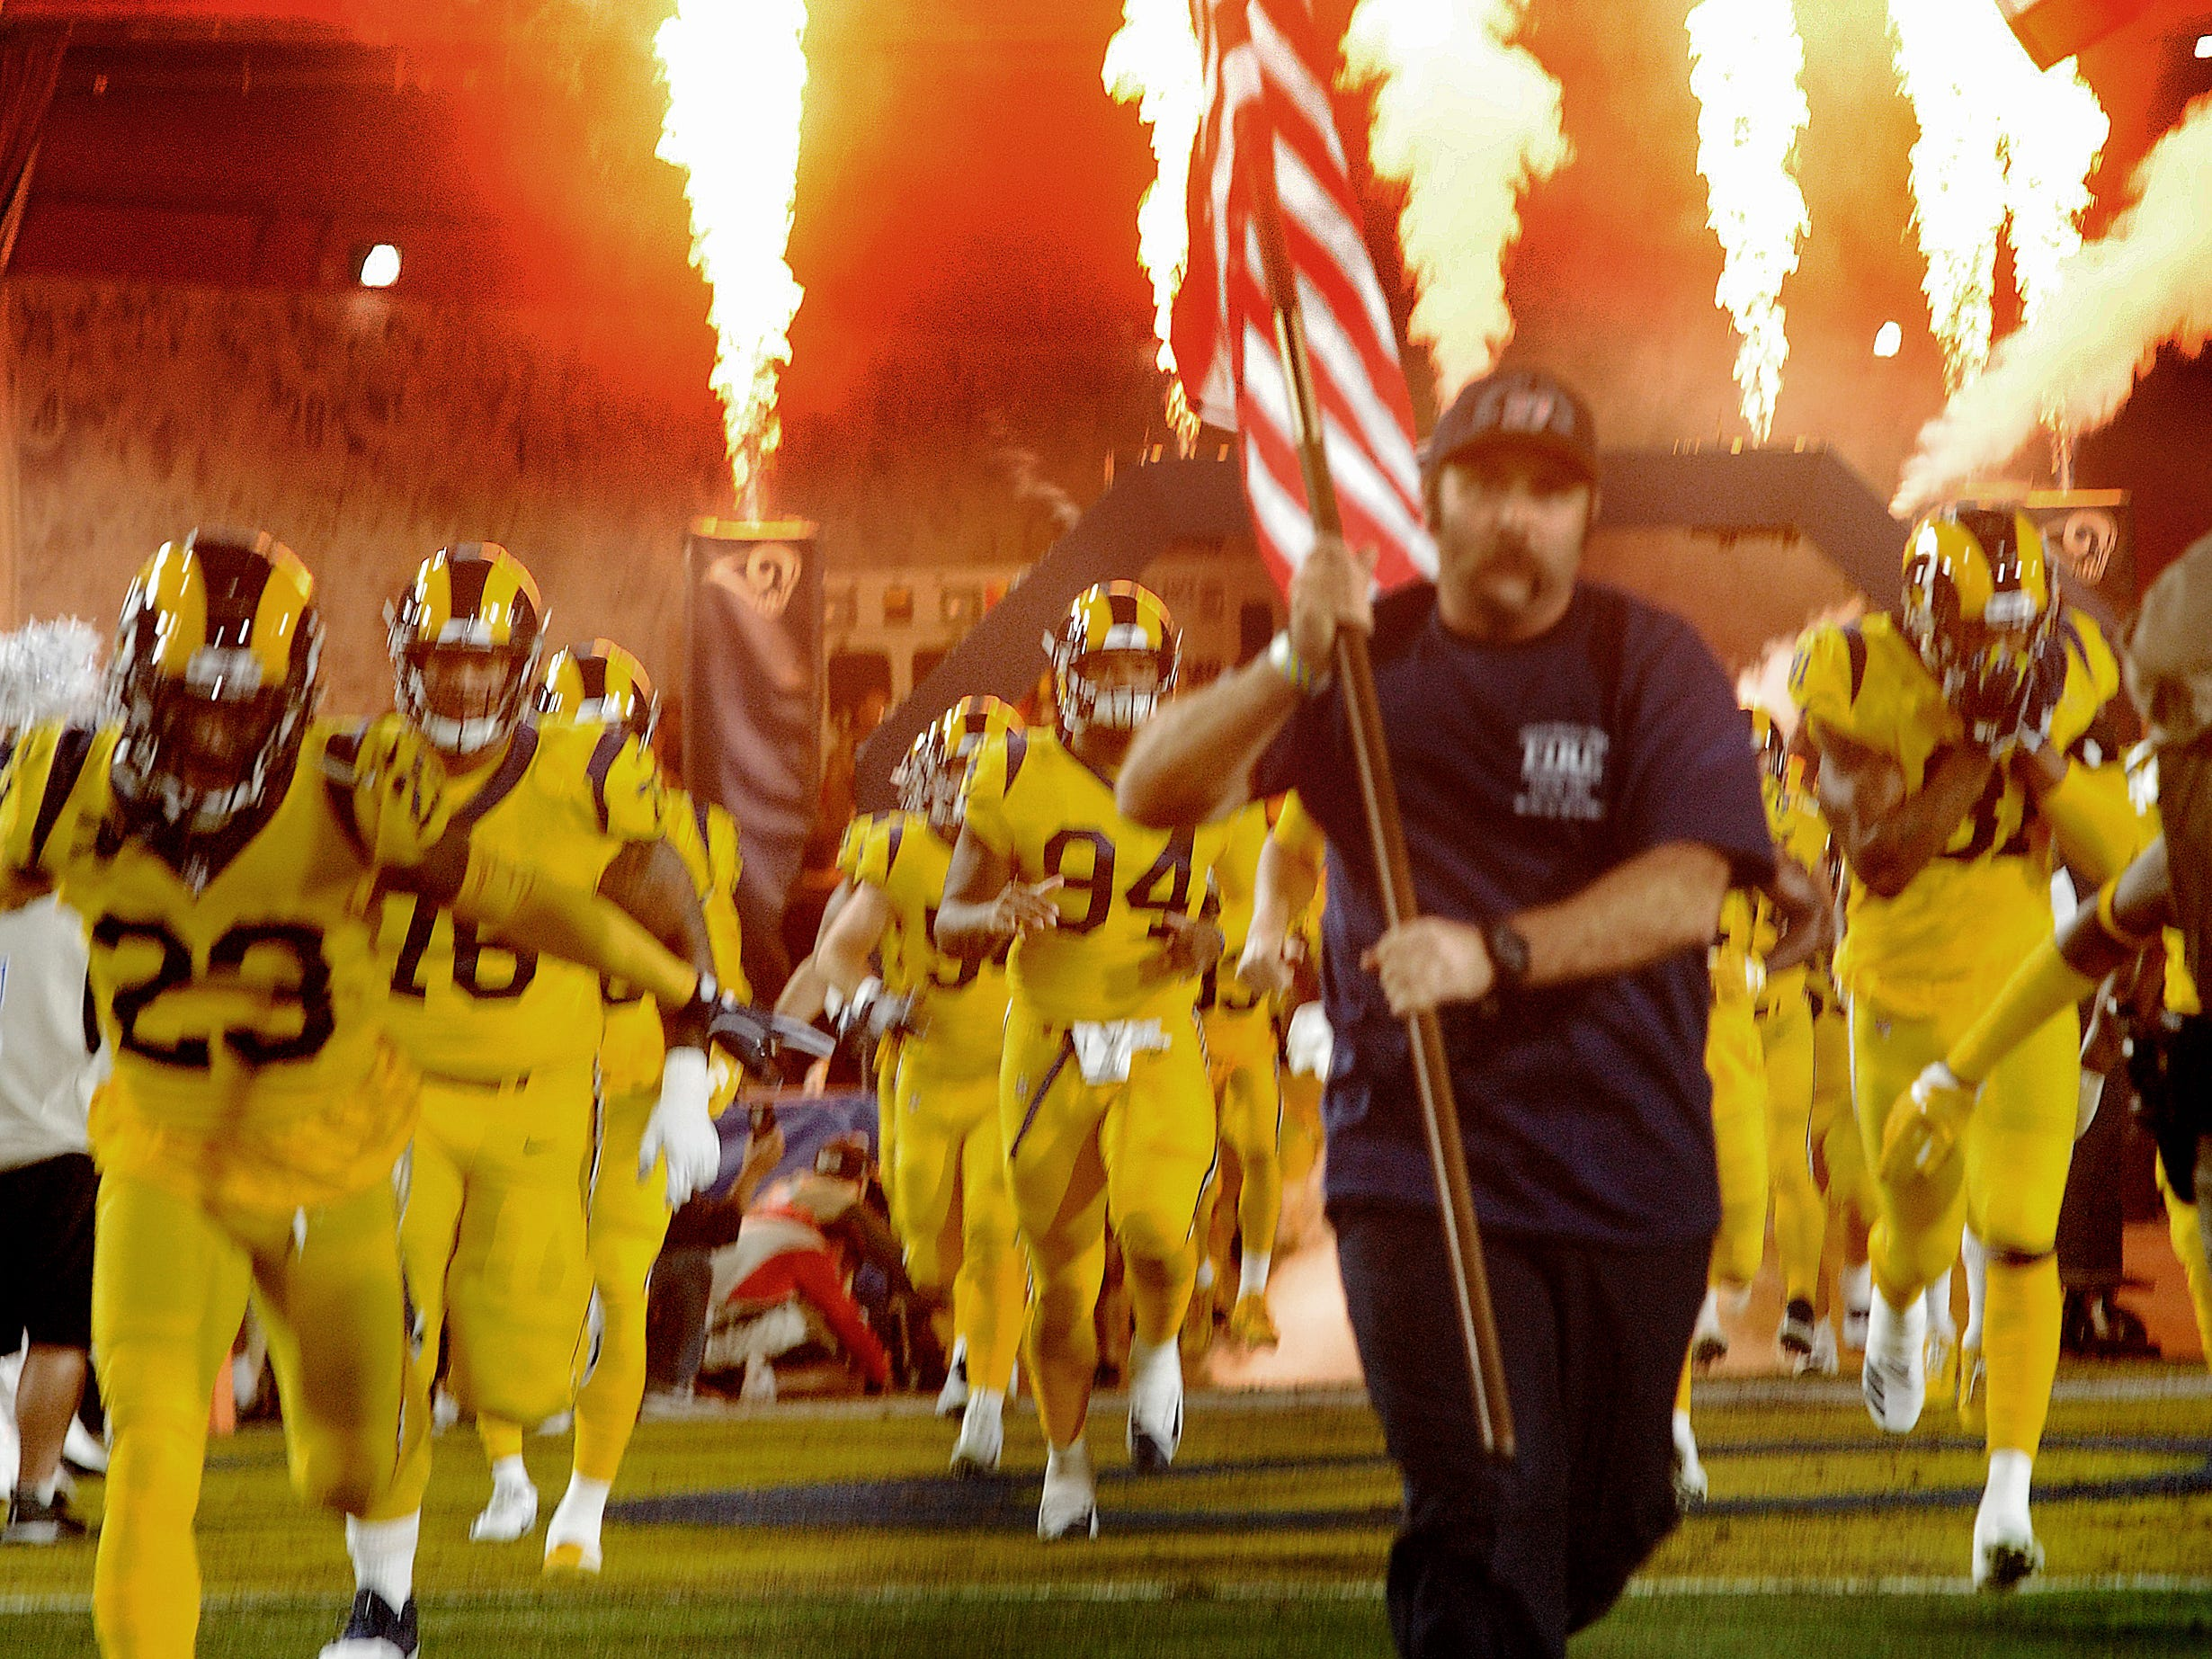 The Rams take the field before Monday night's emotional game against the Chiefs at the Coliseum.